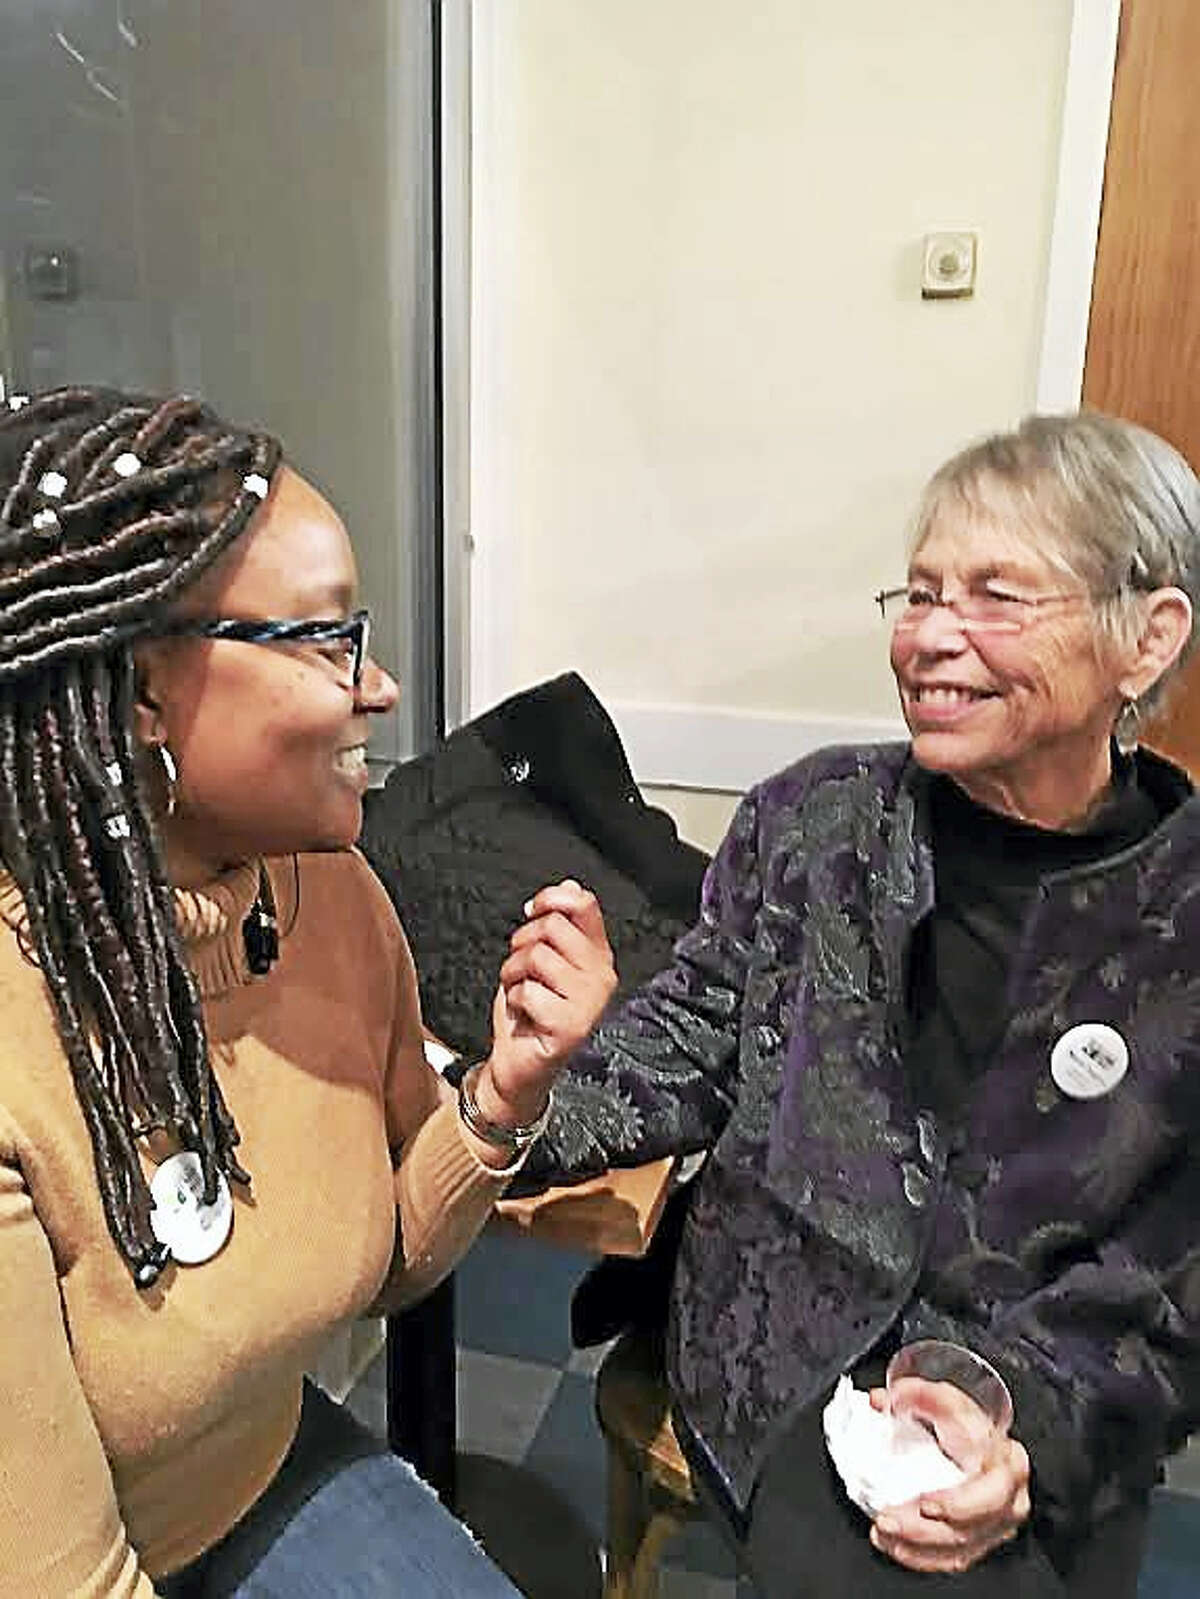 Tyra Pendergrass, left, and Marie Tupper, both members of the New Haven Land Trust board, get to know each other better at a celebration Wednesday marking the partnership with Schooner Inc.